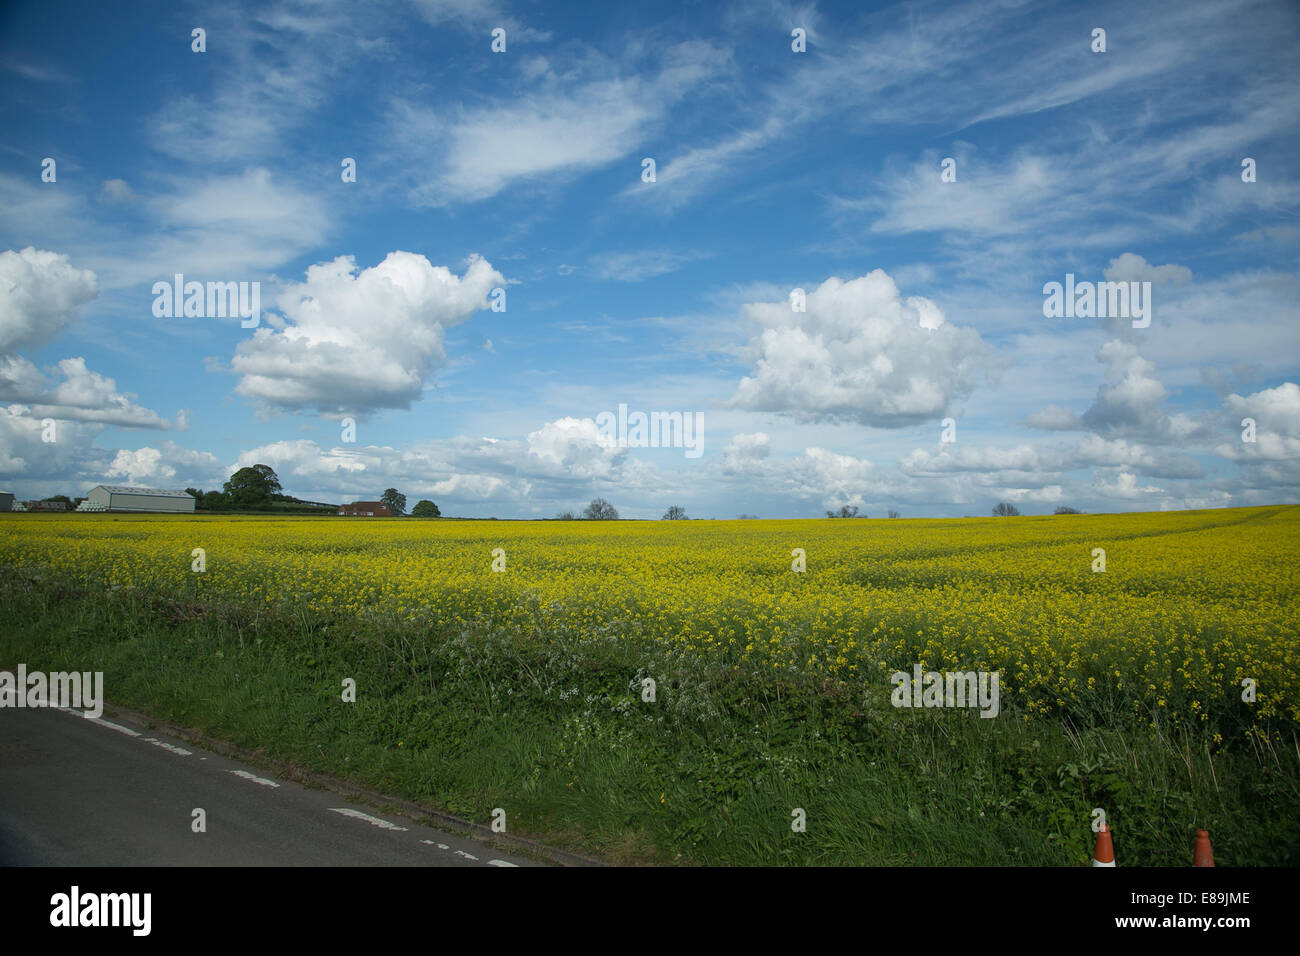 A sunny day of blue skies and fluffy clouds over a rapeseed field of yellow, Wolverhampton countryside, UK - Stock Image